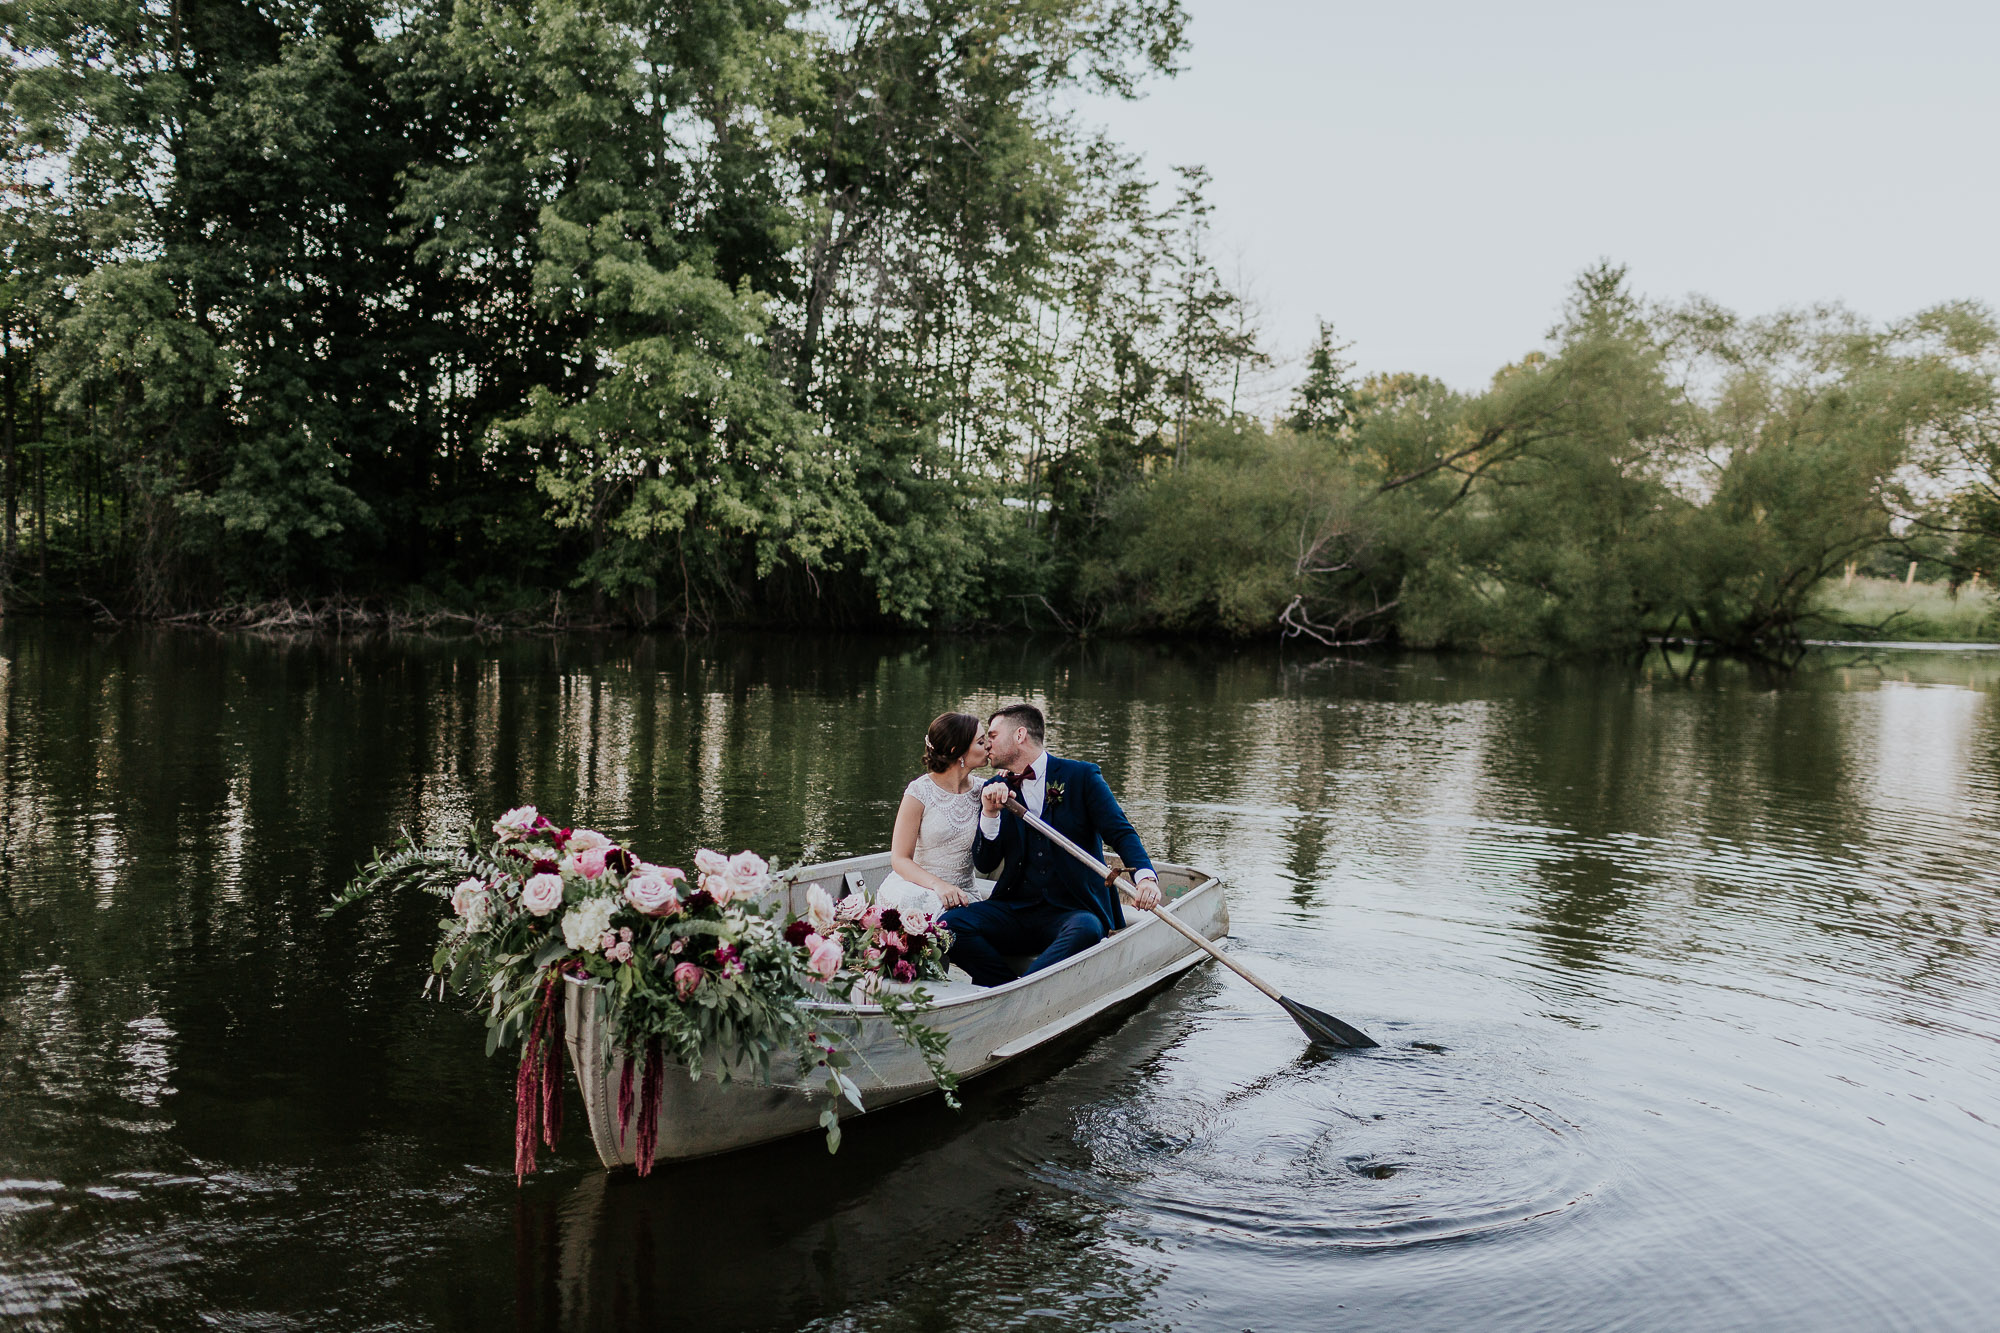 row boat wedding florals inspiration outdoor wedding photographer